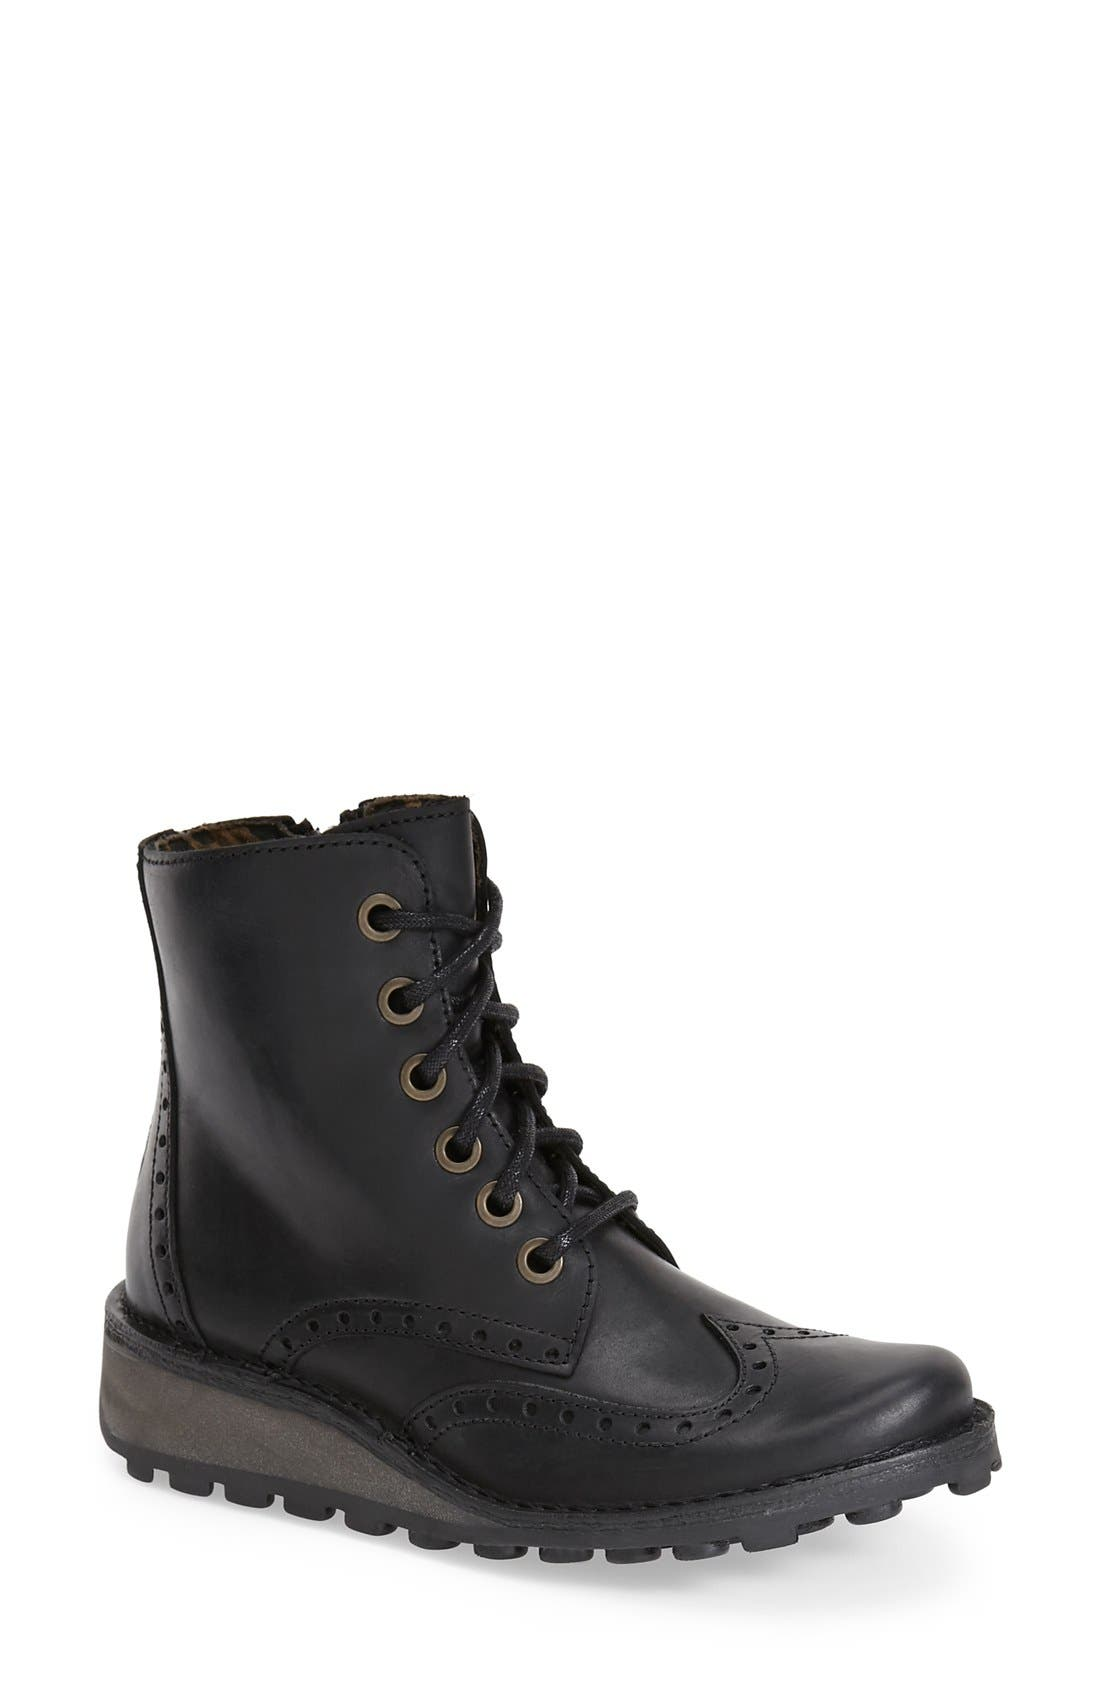 'Marl' Wedge Boot, Main, color, 001